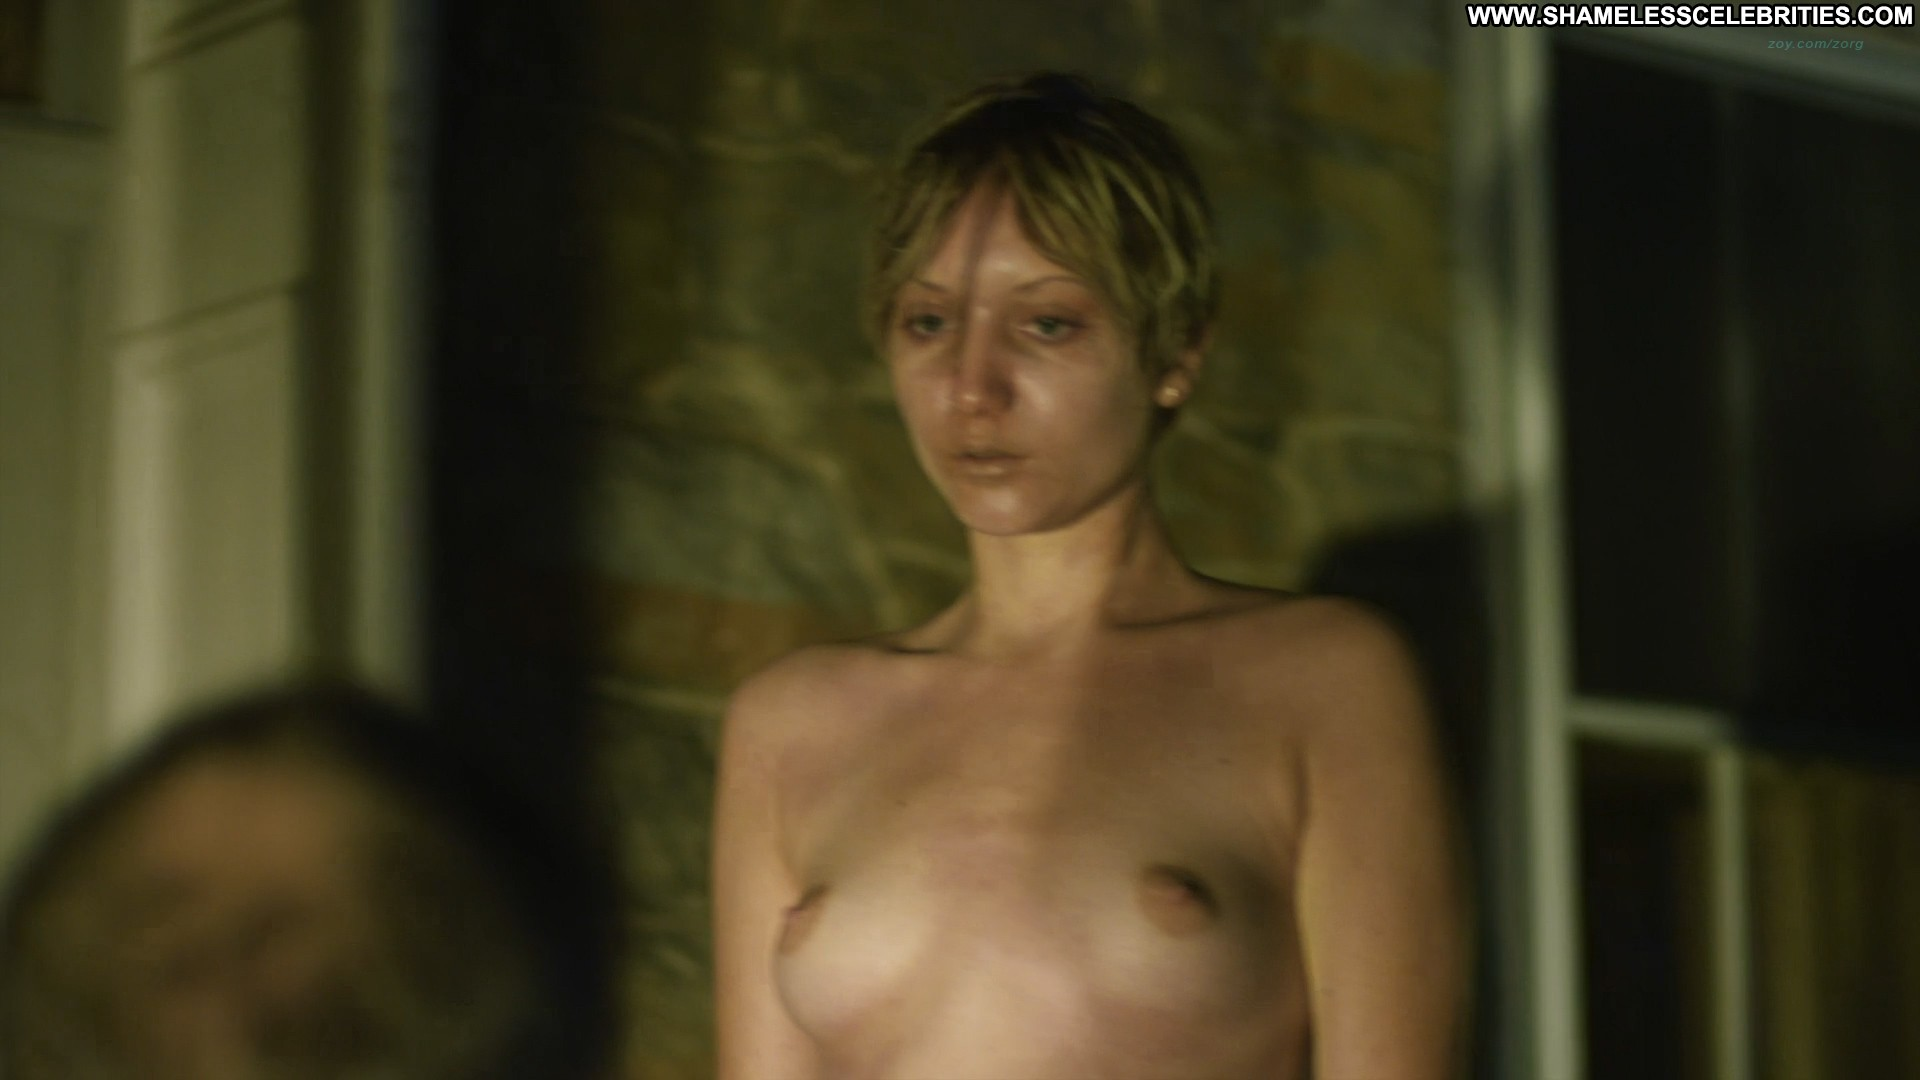 Gretchen lodge nude lovely molly 8